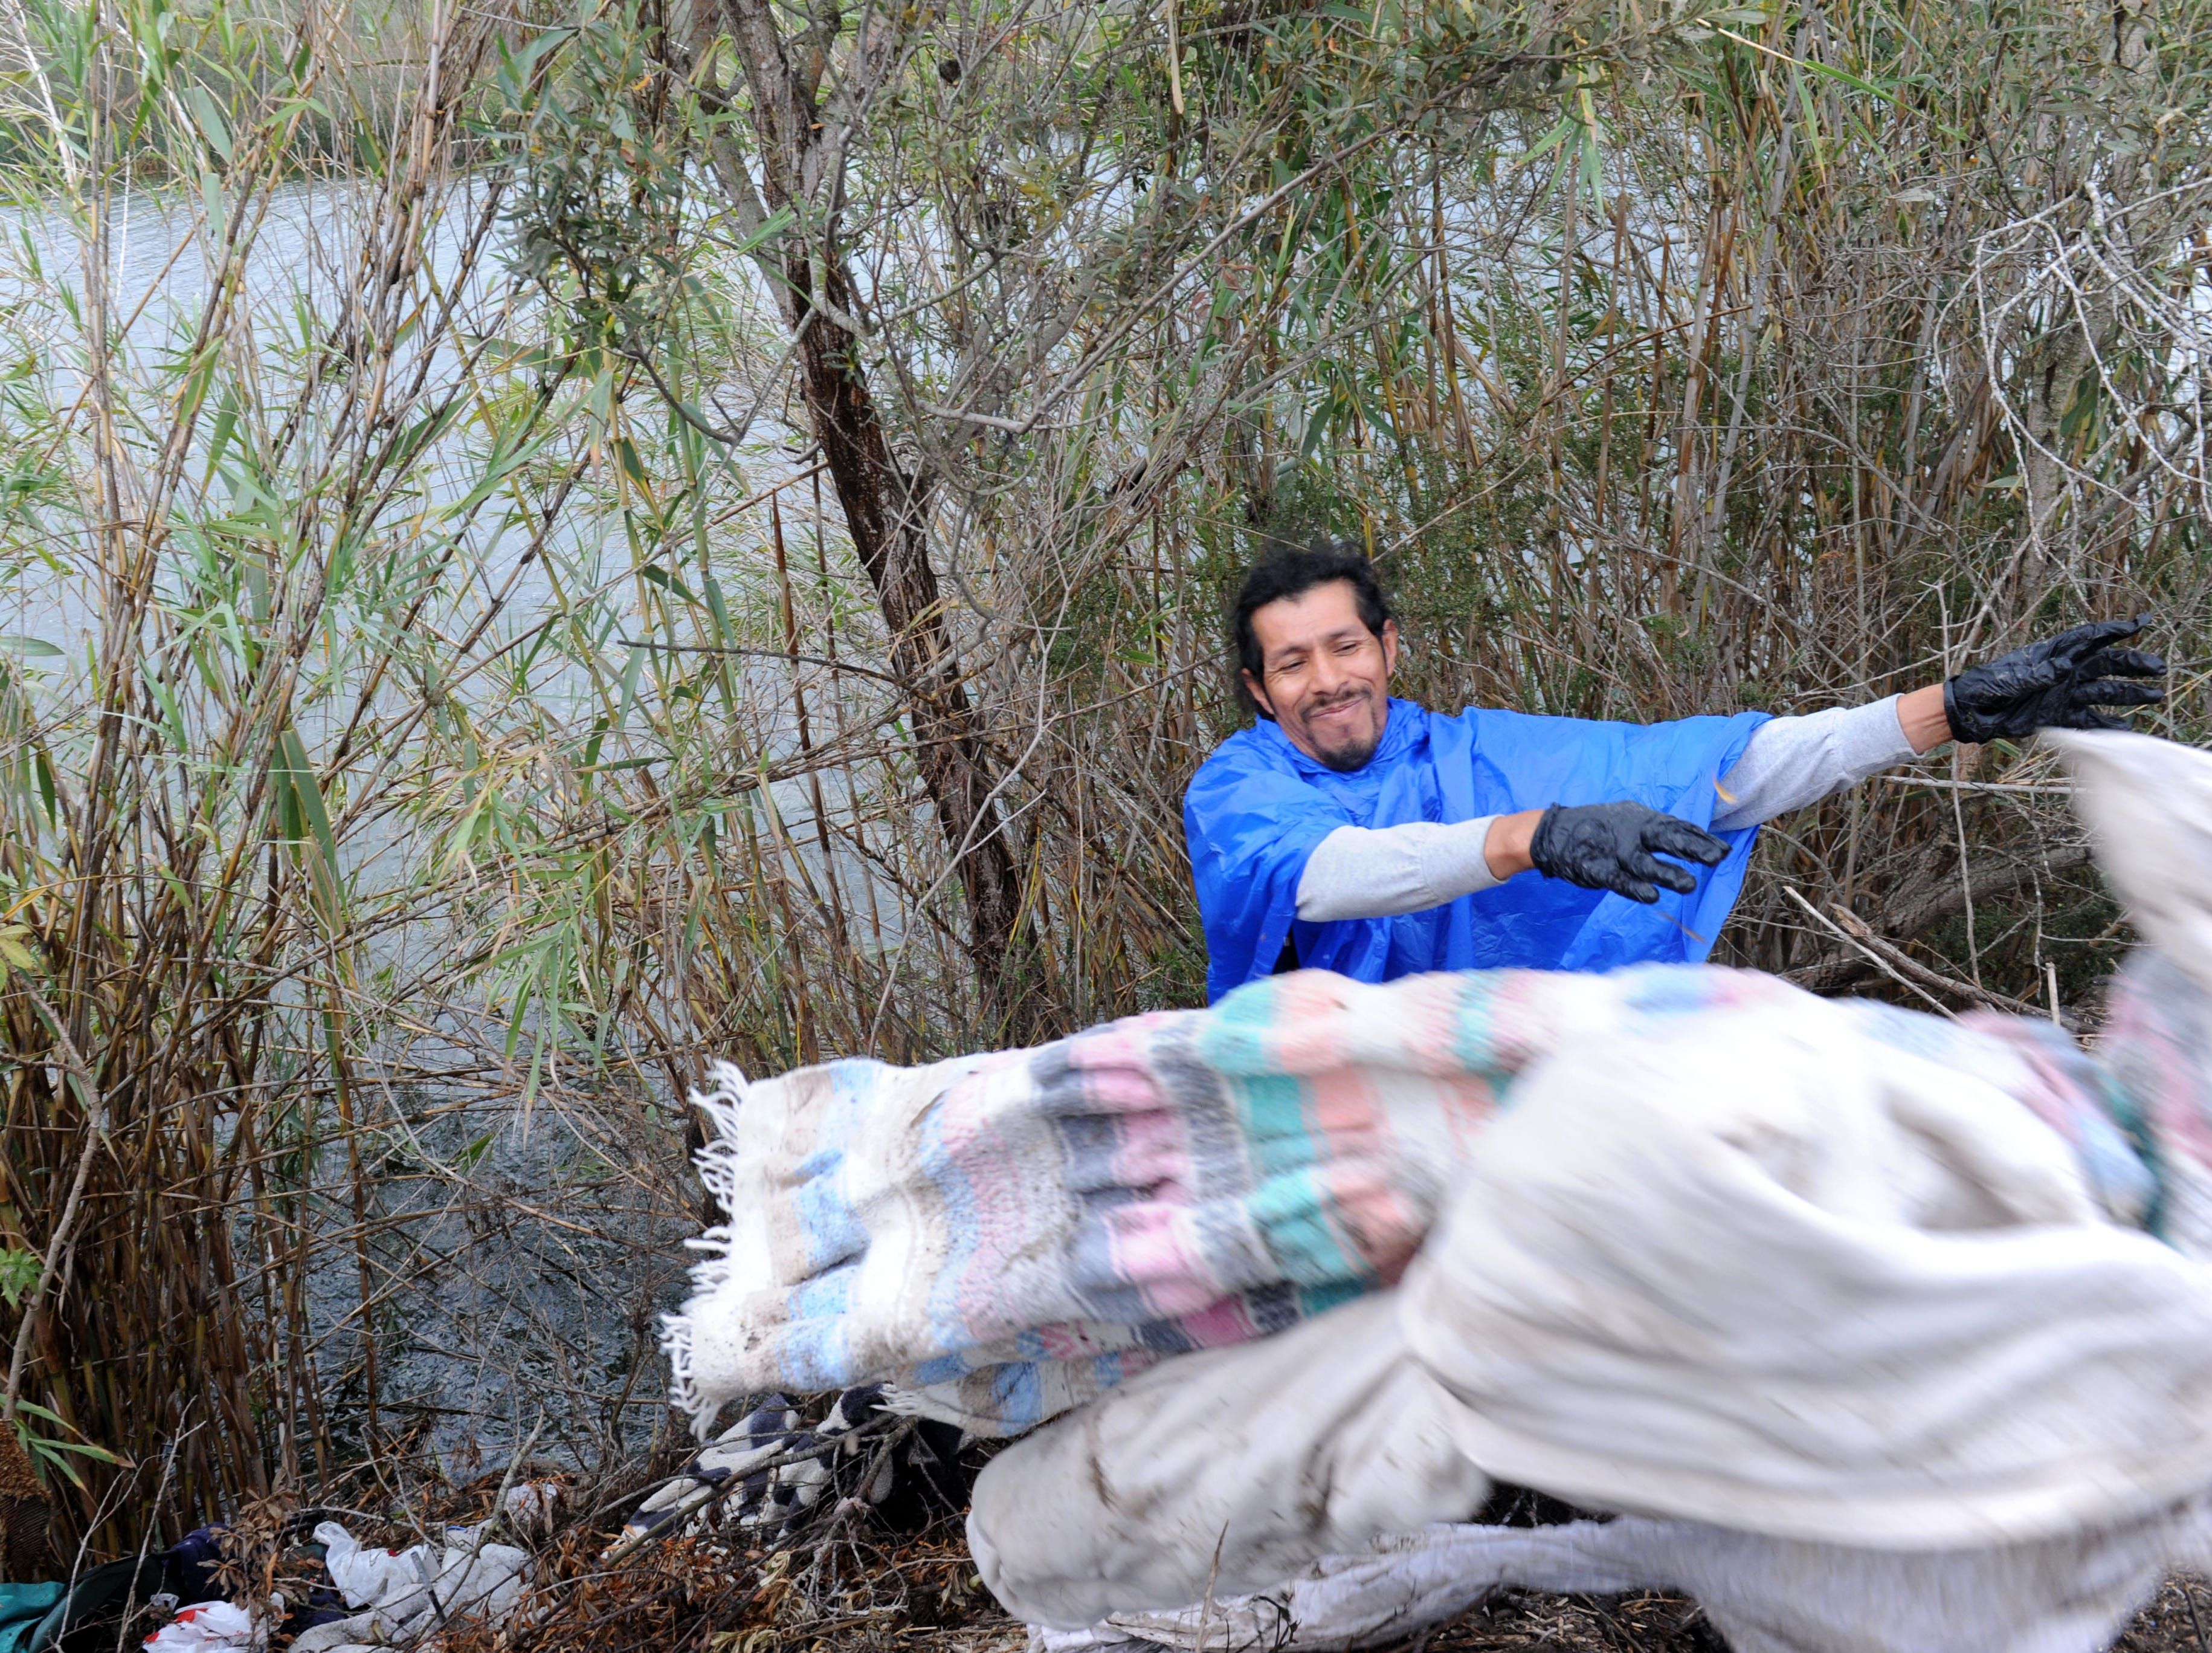 Javier Flores works in the rain Thursday to clear out the Santa Clara River bottom to minimize trash flow to the ocean. The city of Ventura organized the effort along the embankment where homeless people live.